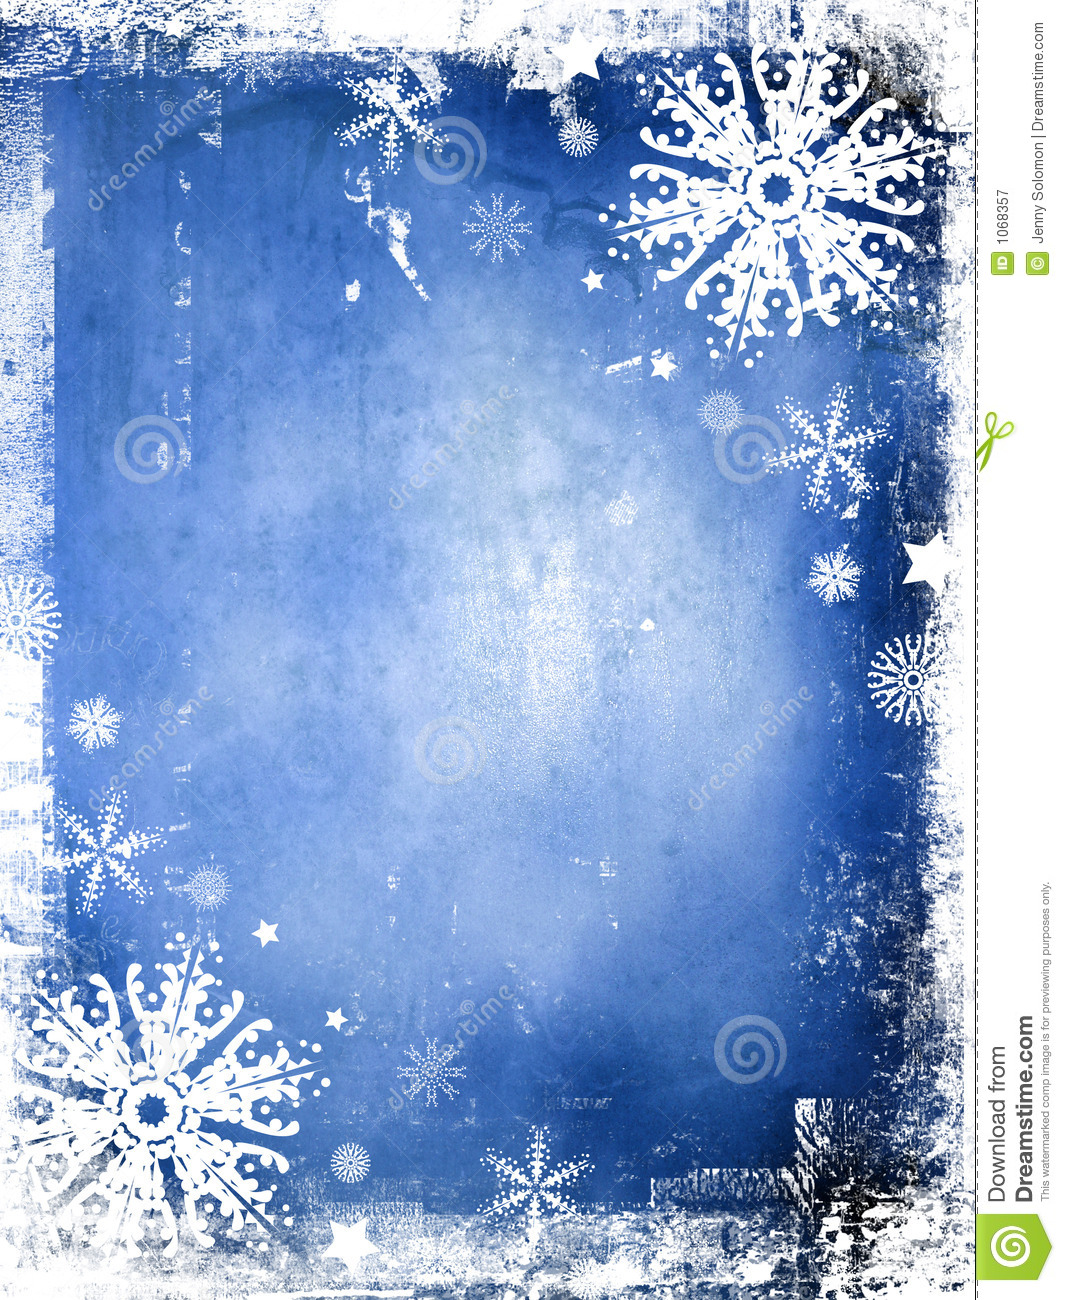 winter background stock illustration  illustration of